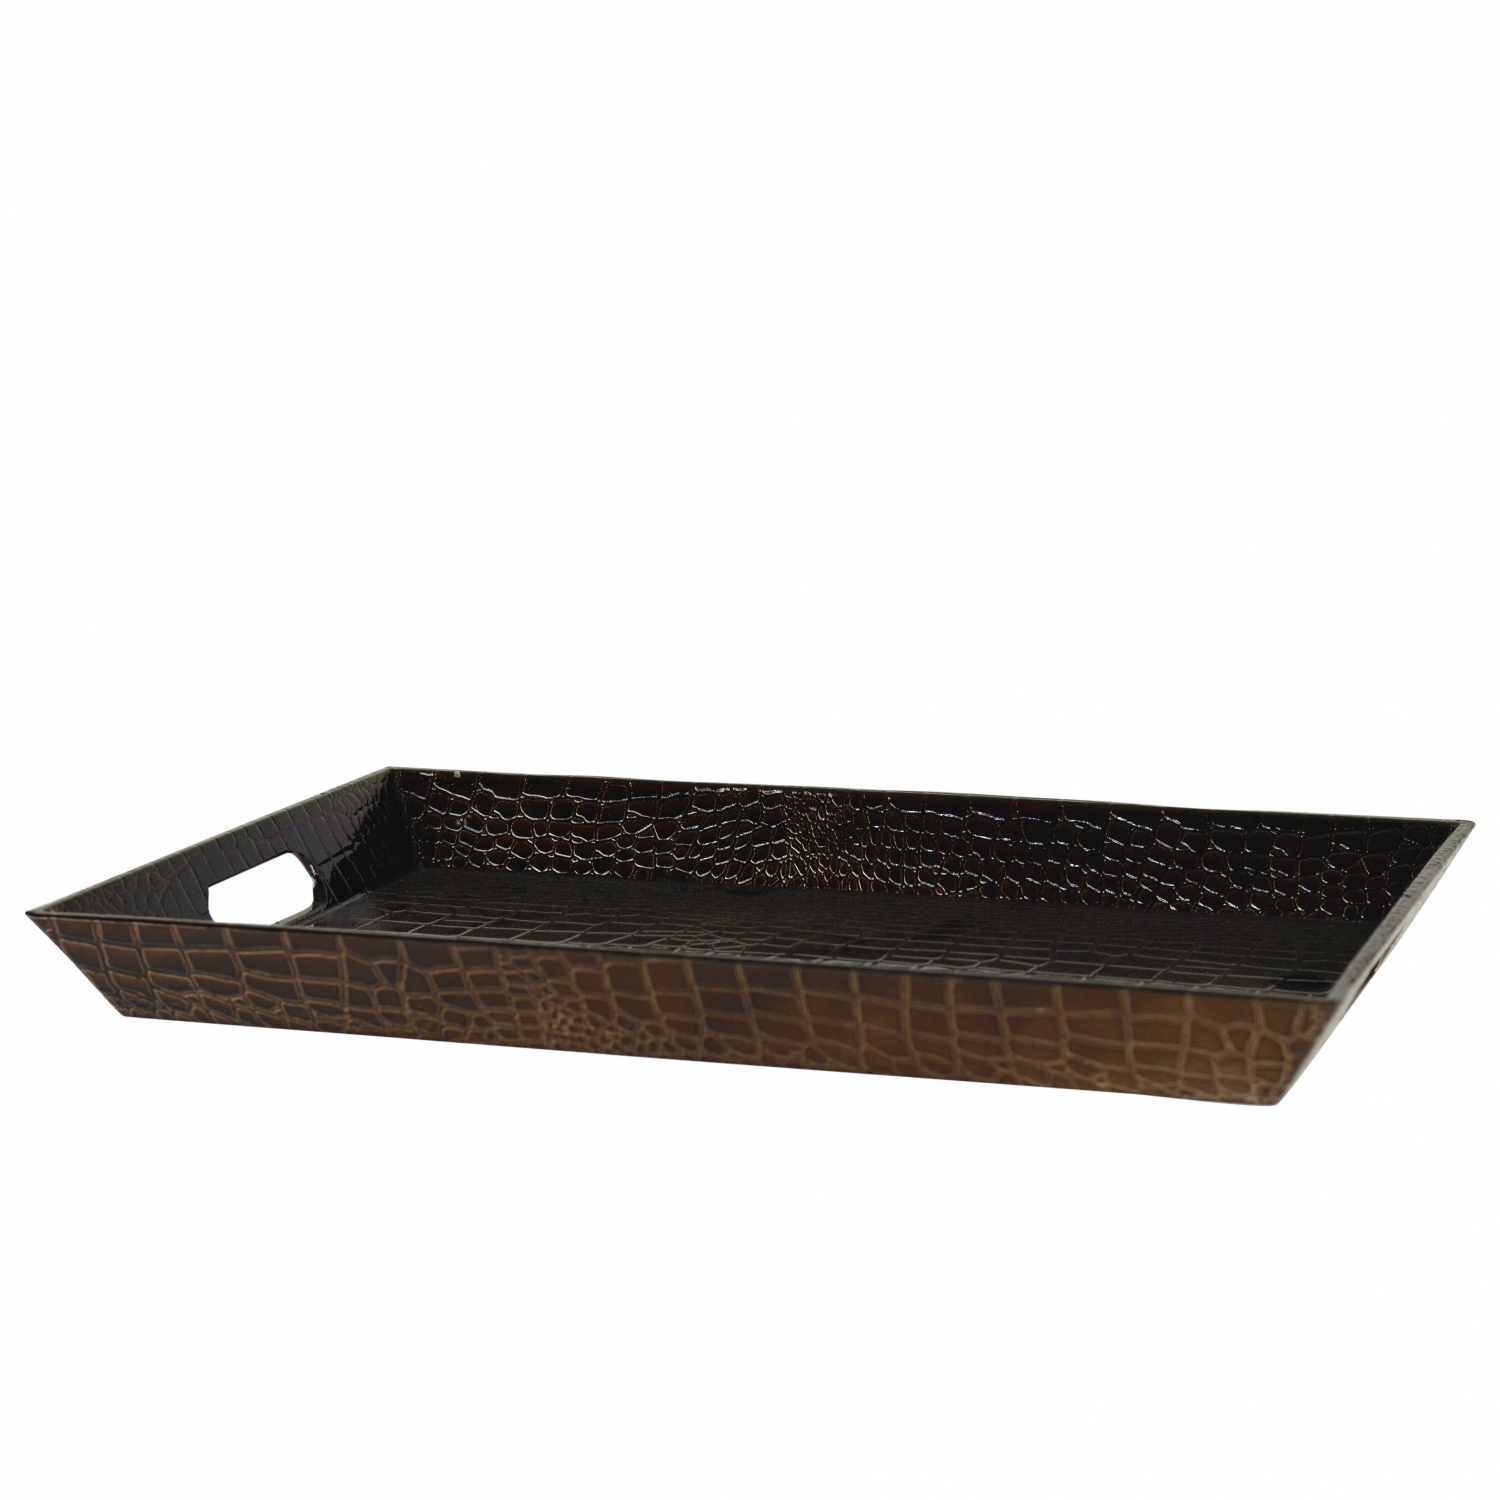 10 Strawberry Street GATR-BRNREC Brown Rectangular Gator Serving Tray 18